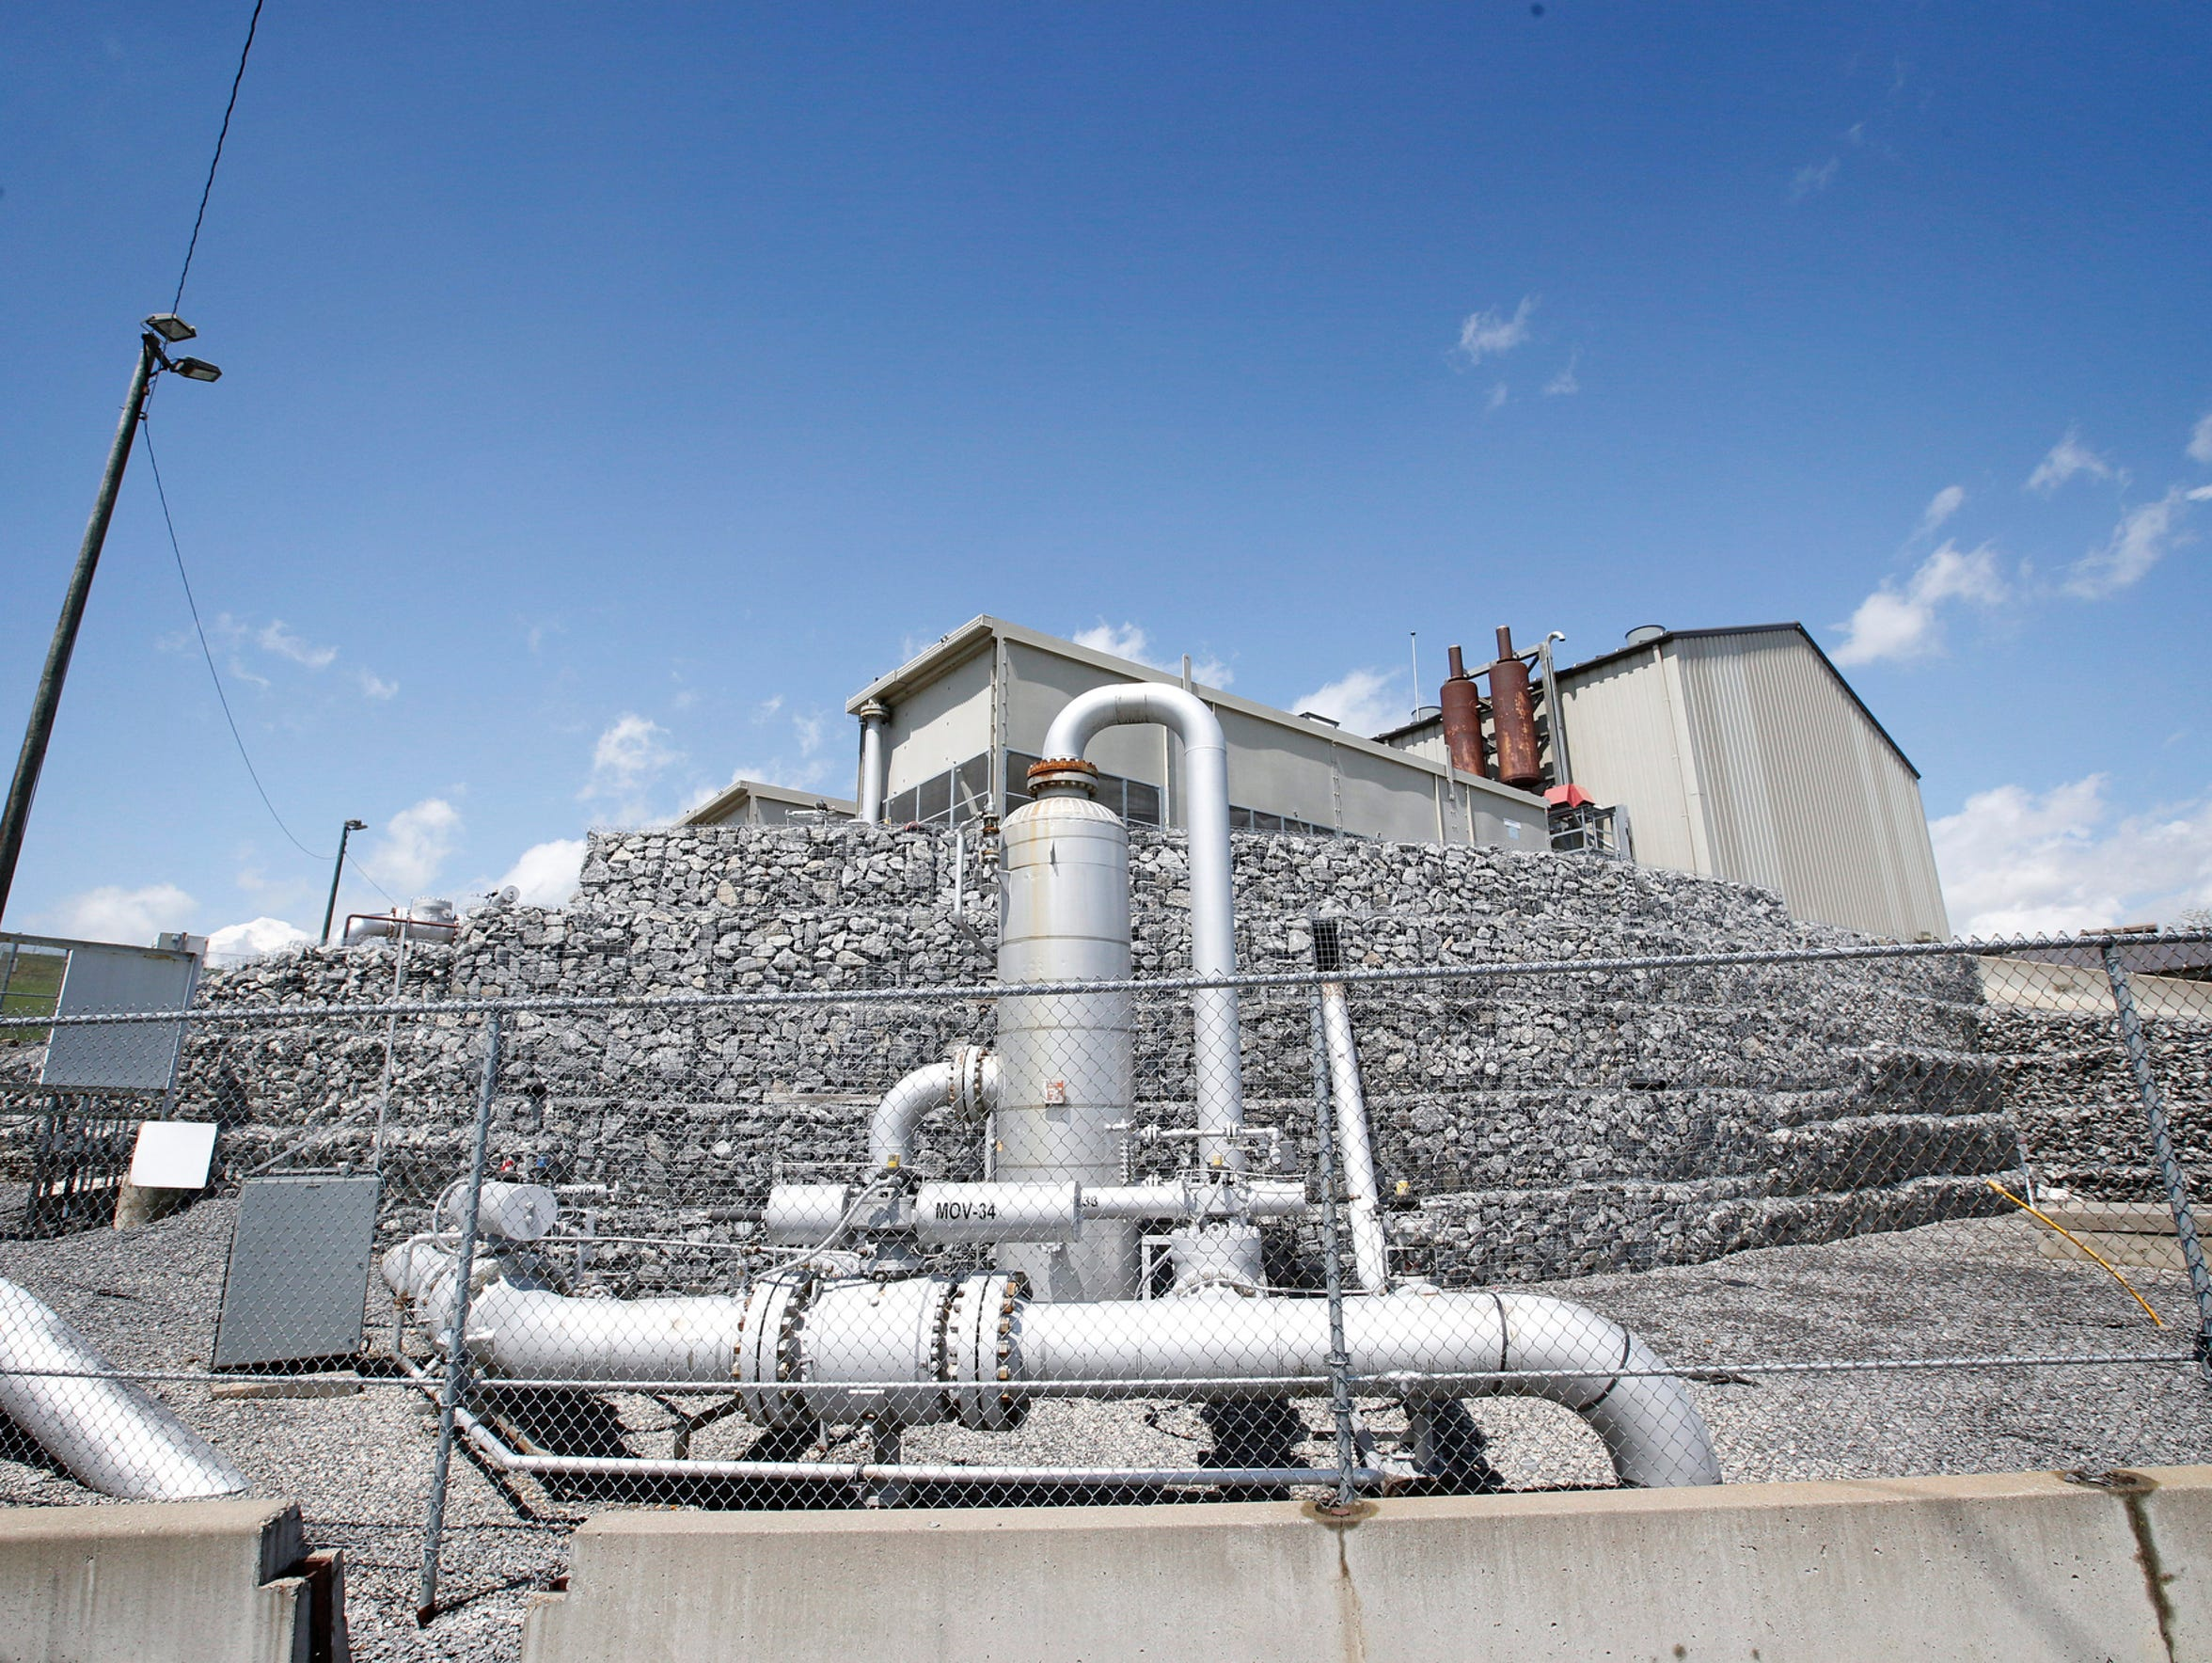 Crestwood is looking to expand by storing gas in underground